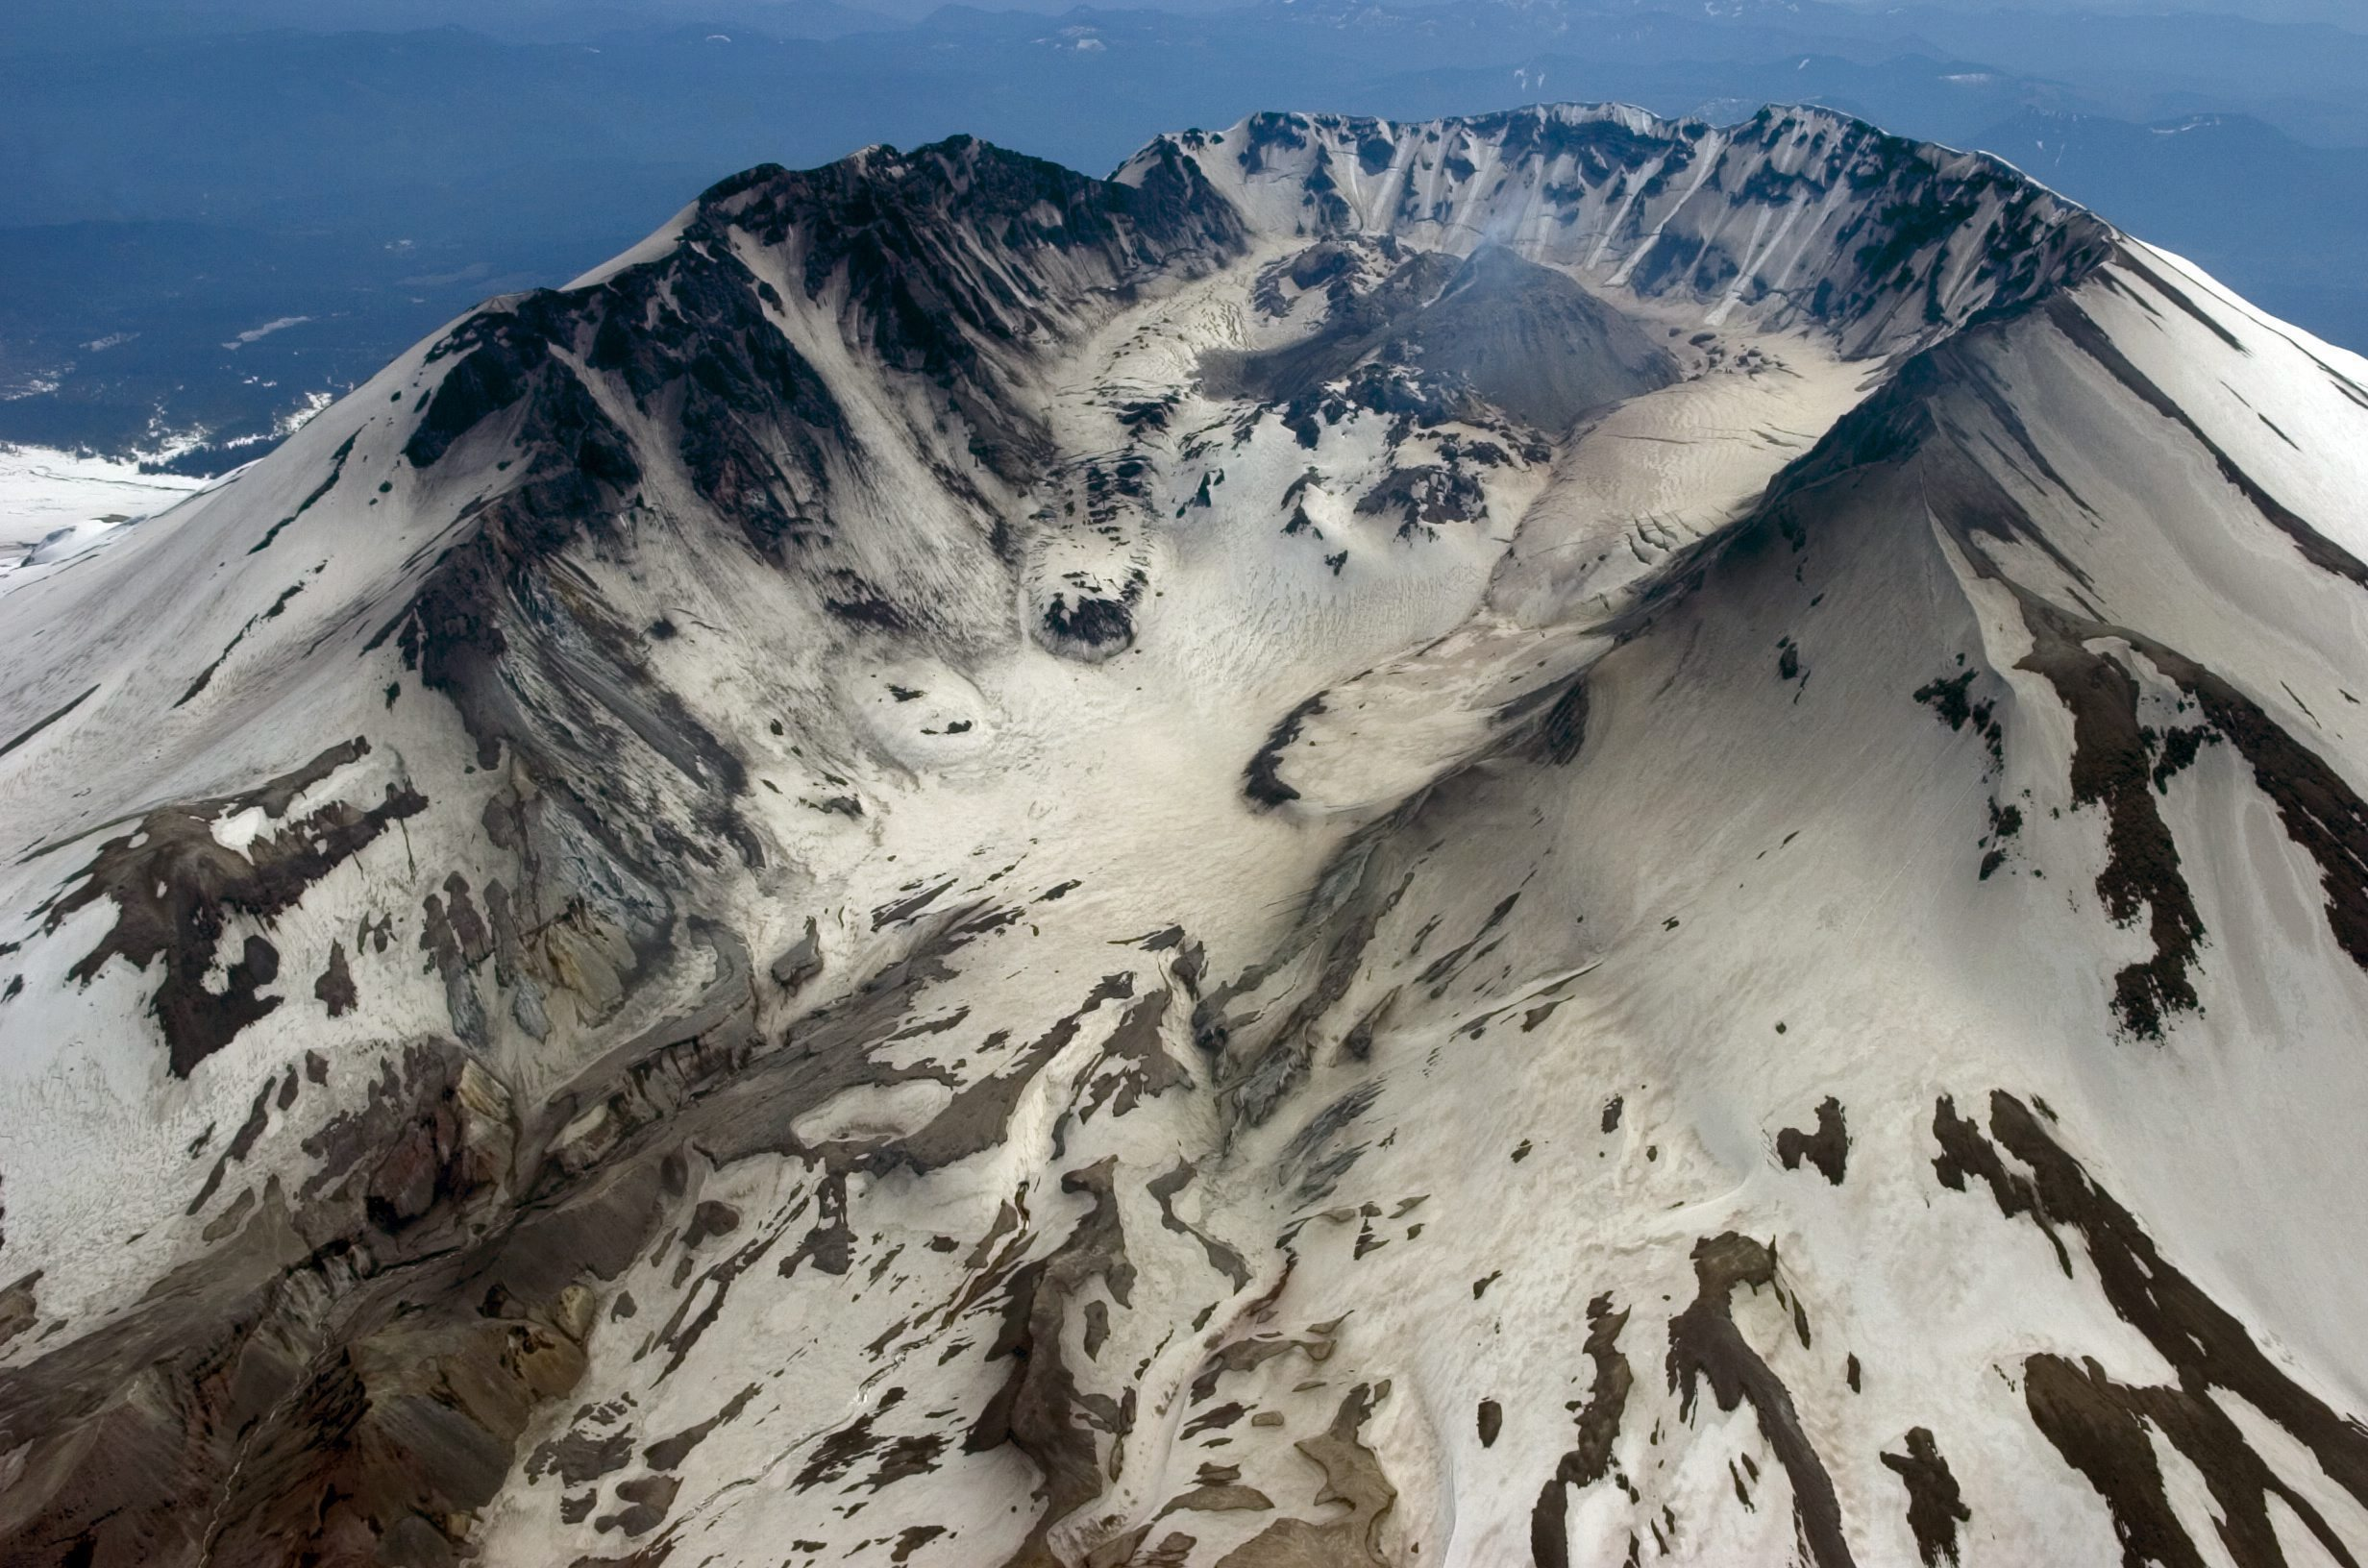 An aerial view of Mount St. Helens in 2006. A chunk of the original volcano is still missing after the 1980 eruption. (AP photo via The Canadian Press)